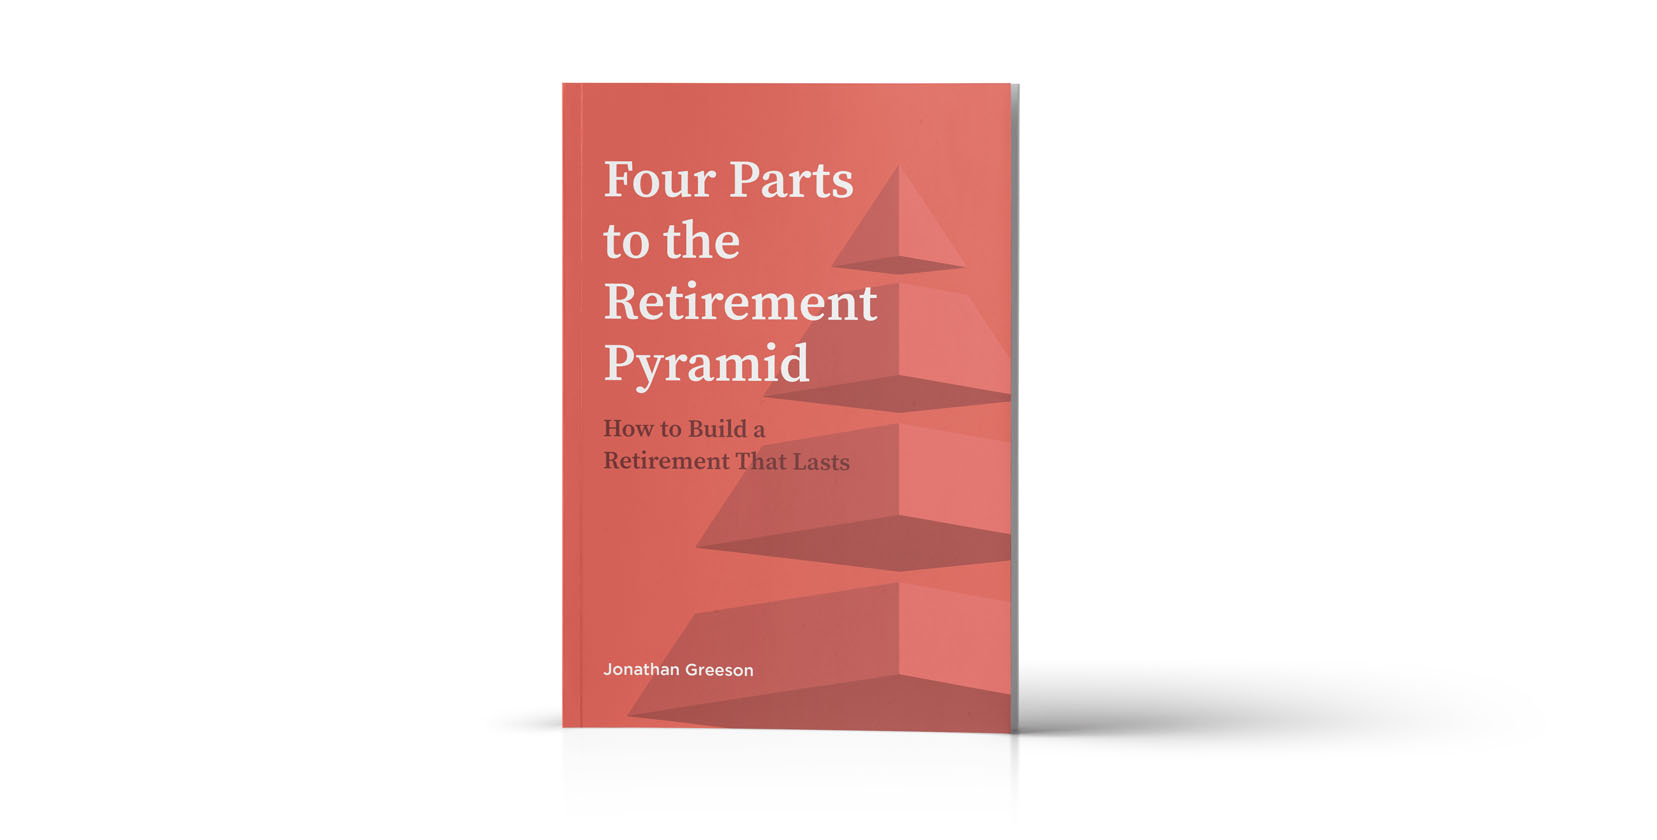 Guide: Four Parts to the Retirement Pyramid: How to Build a Retirement that Lasts, by Jonathan Greeson